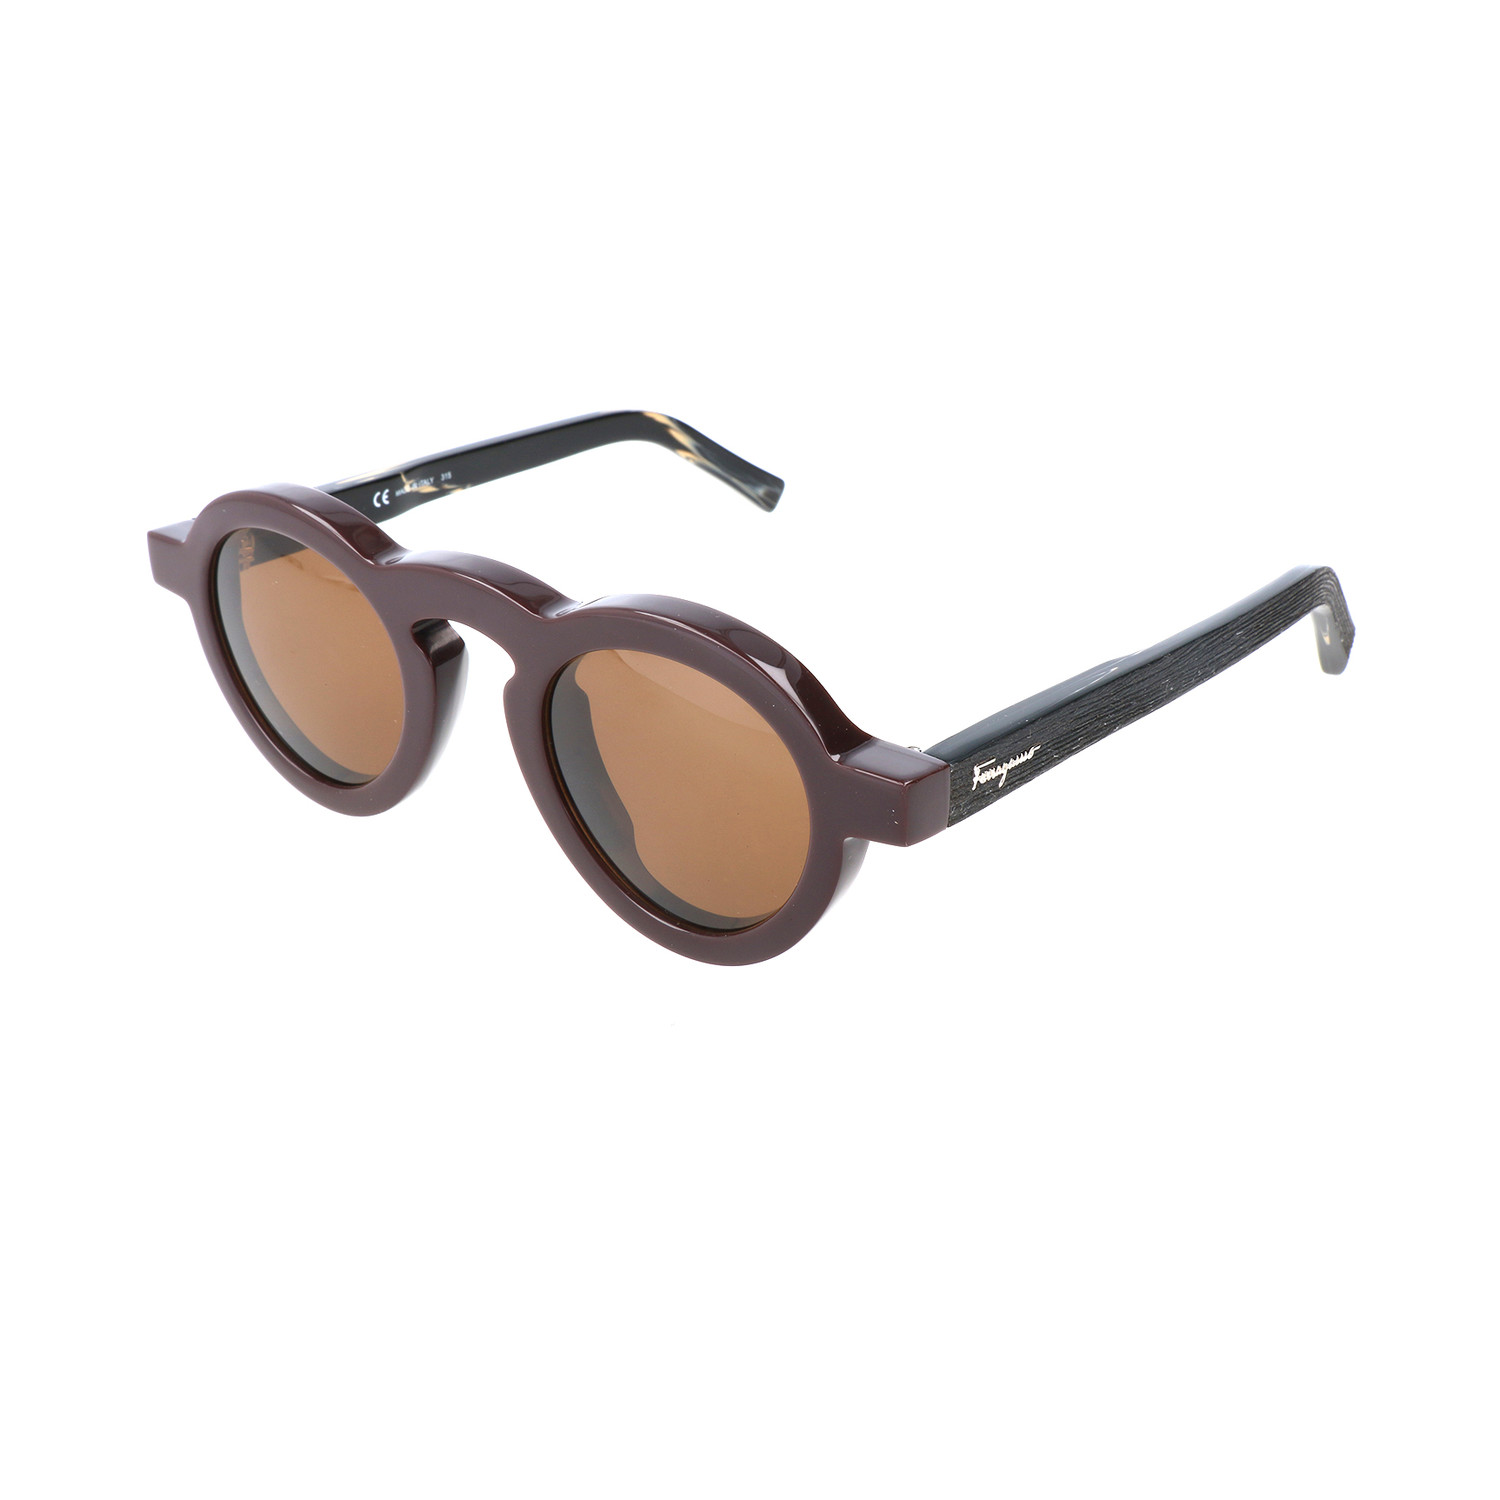 salvatore ferragamo evans sunglass burgundy salvatore ferragamo touch of modern. Black Bedroom Furniture Sets. Home Design Ideas